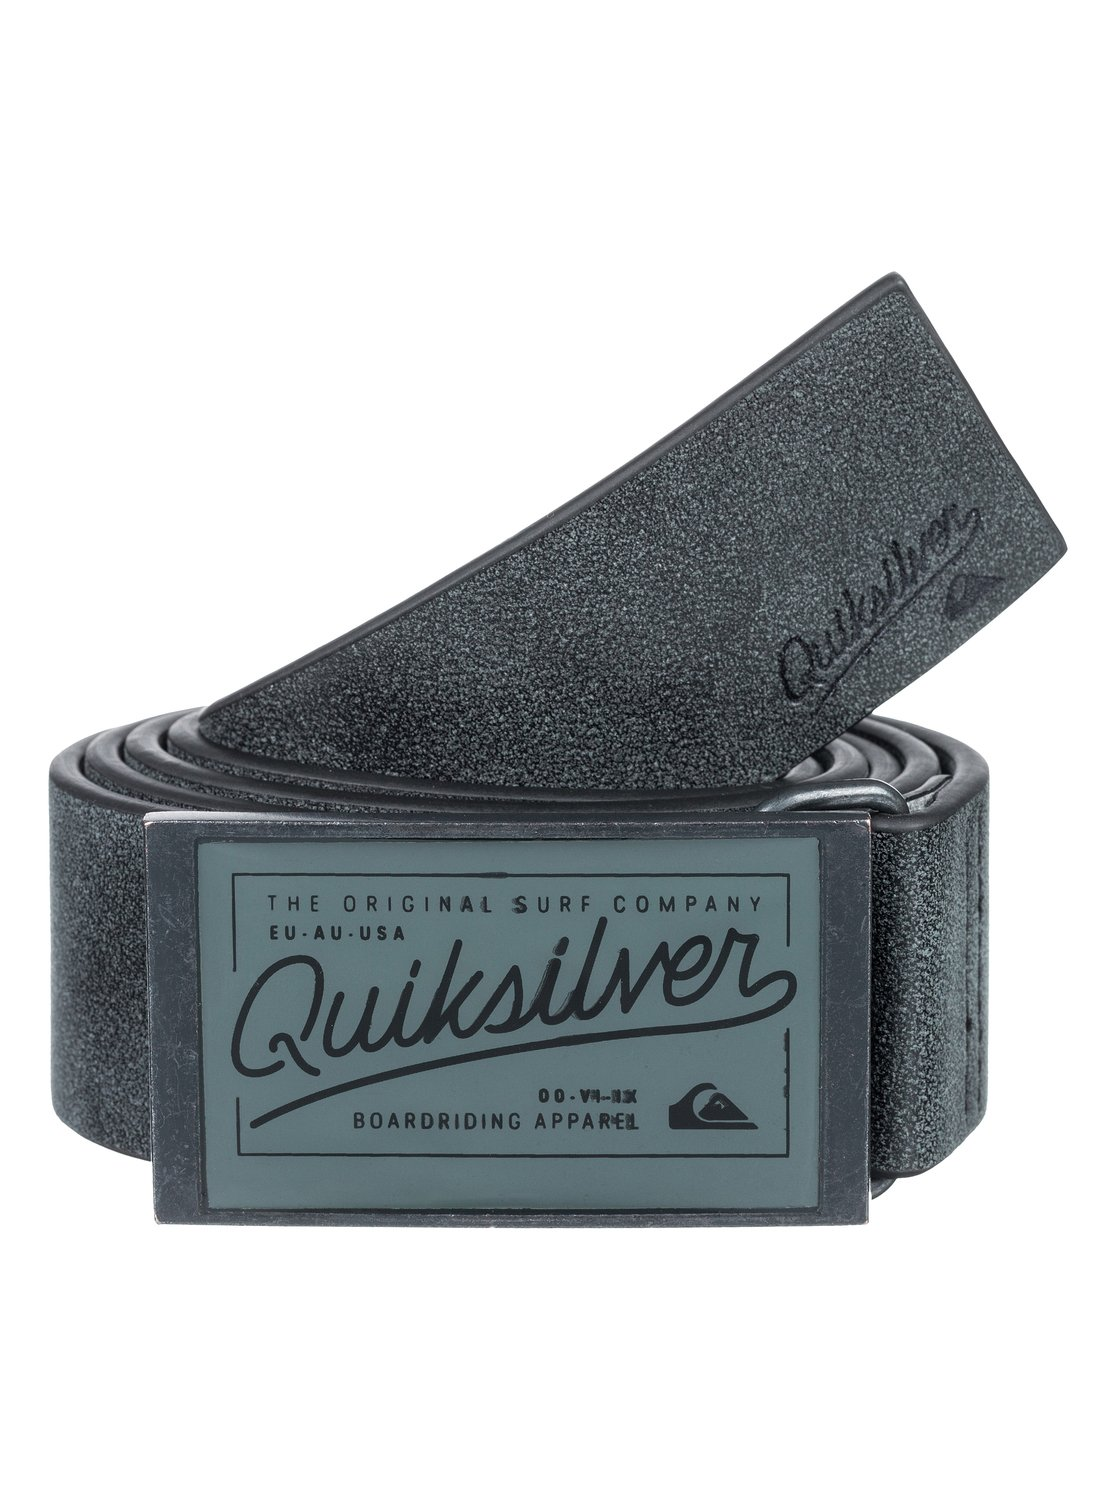 Locked In от Quiksilver RU